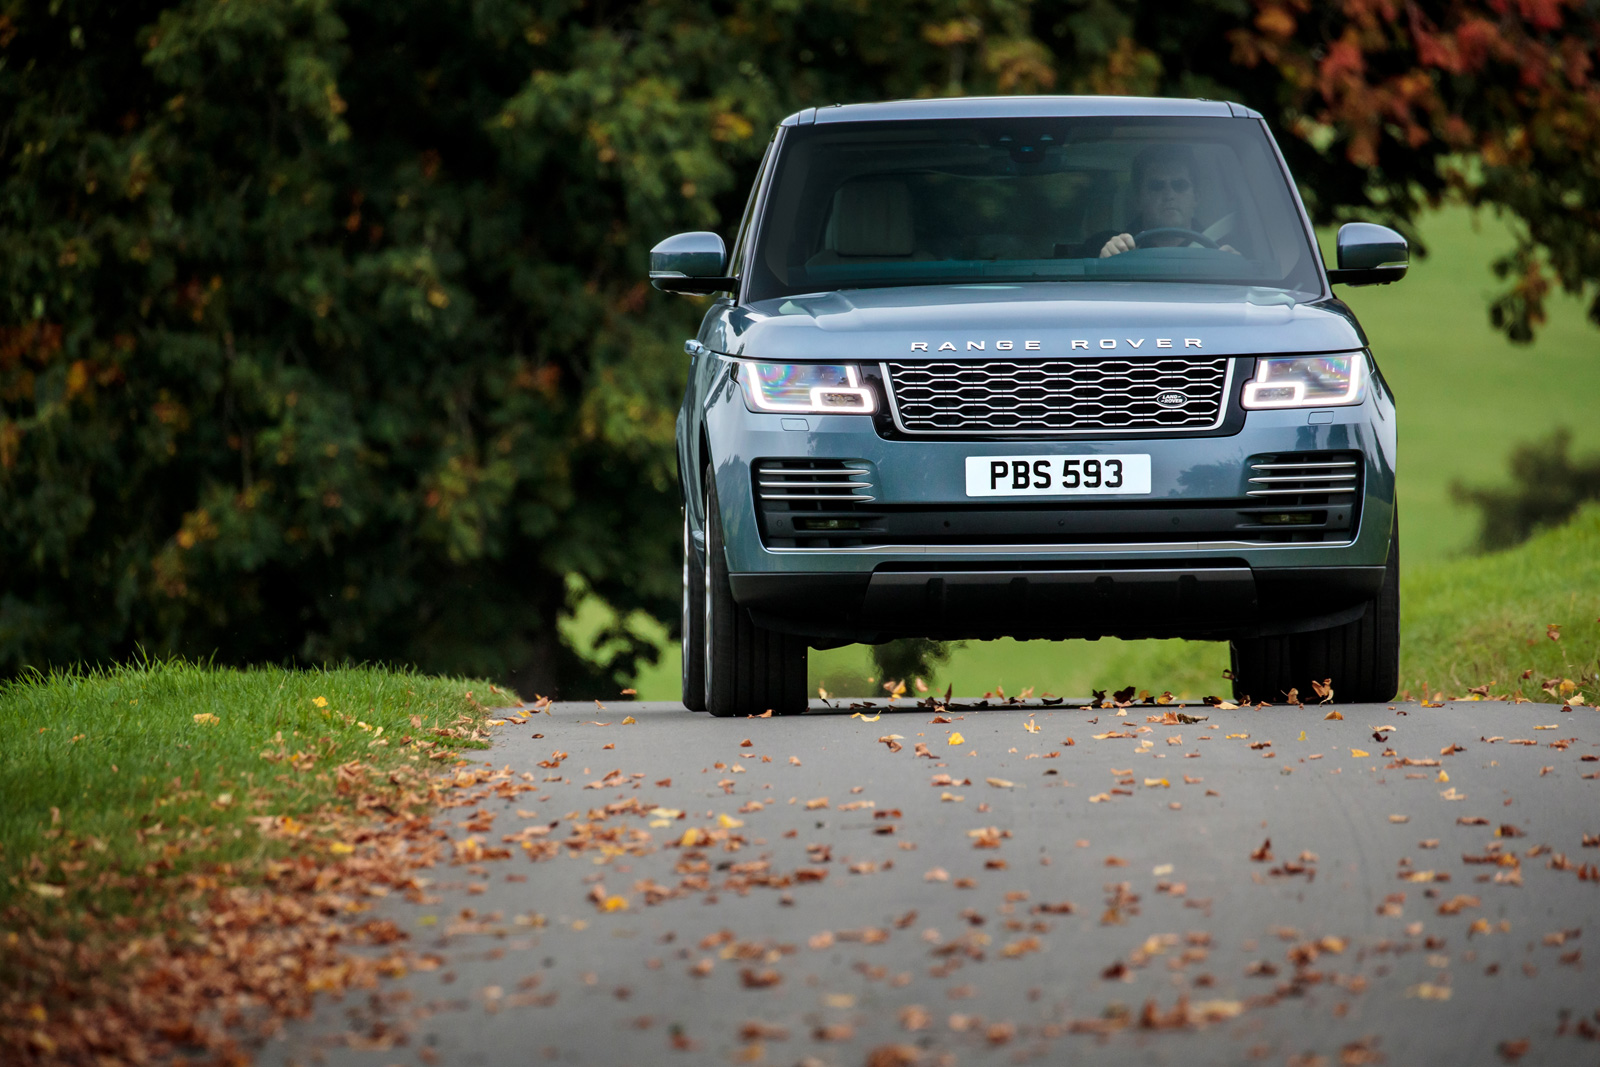 pictures more exterior official site information rover web new landrover land discovery first discover